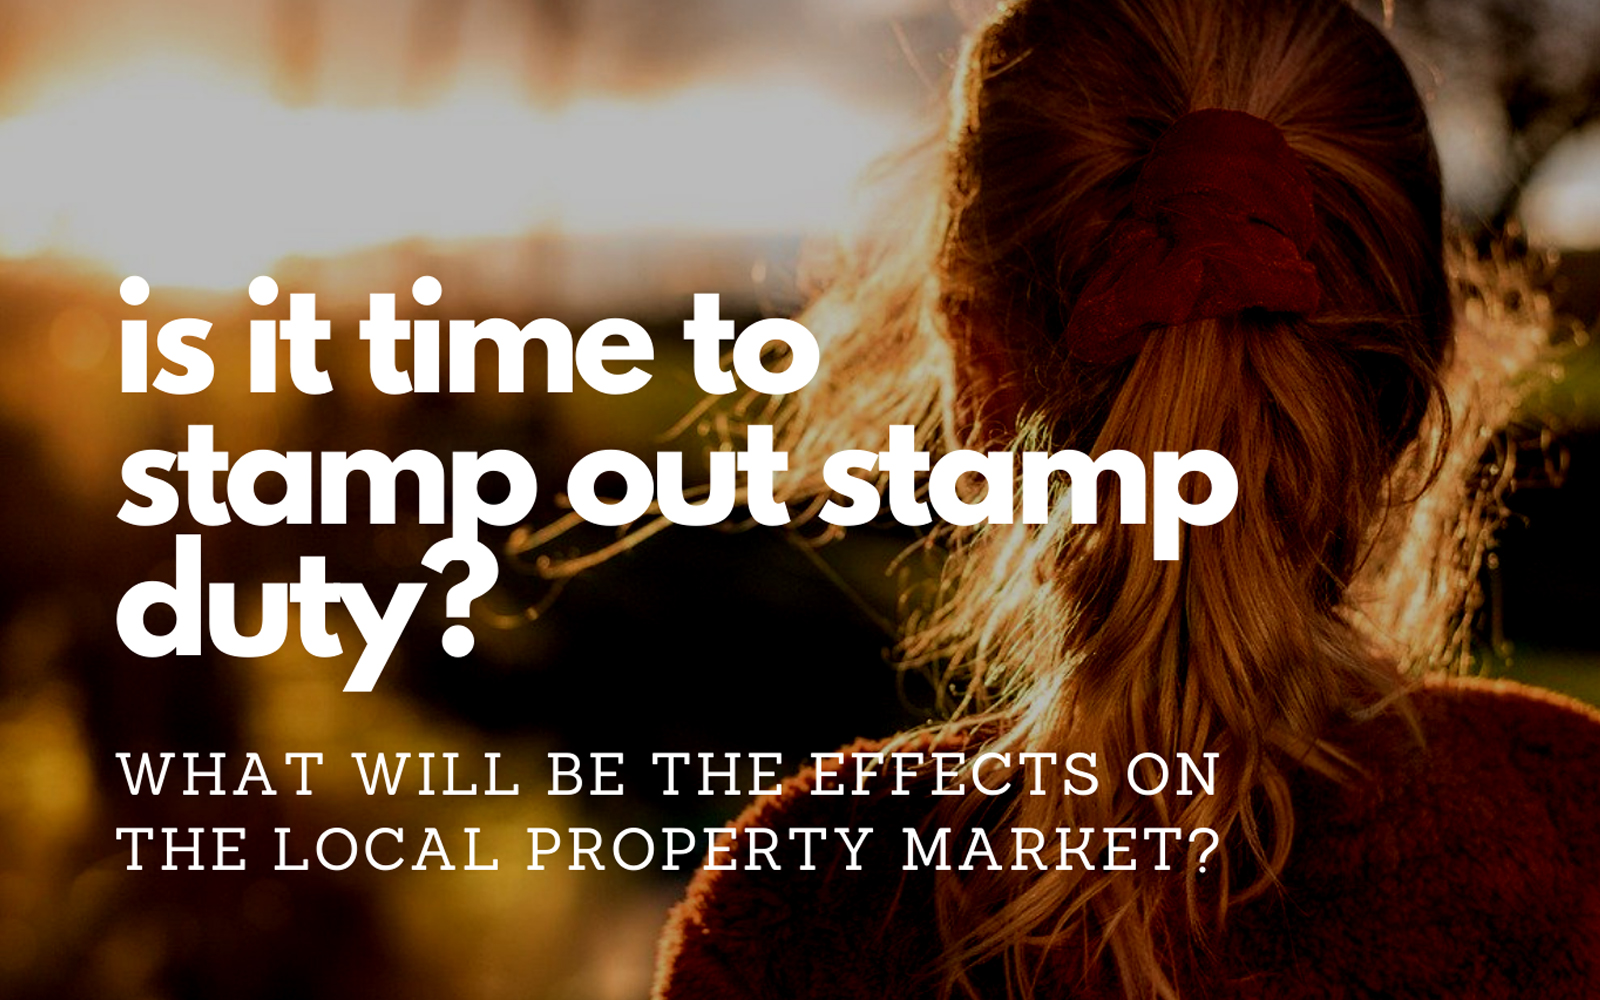 Matlock Property Market: Is it Time to Stamp Out Stamp Duty?